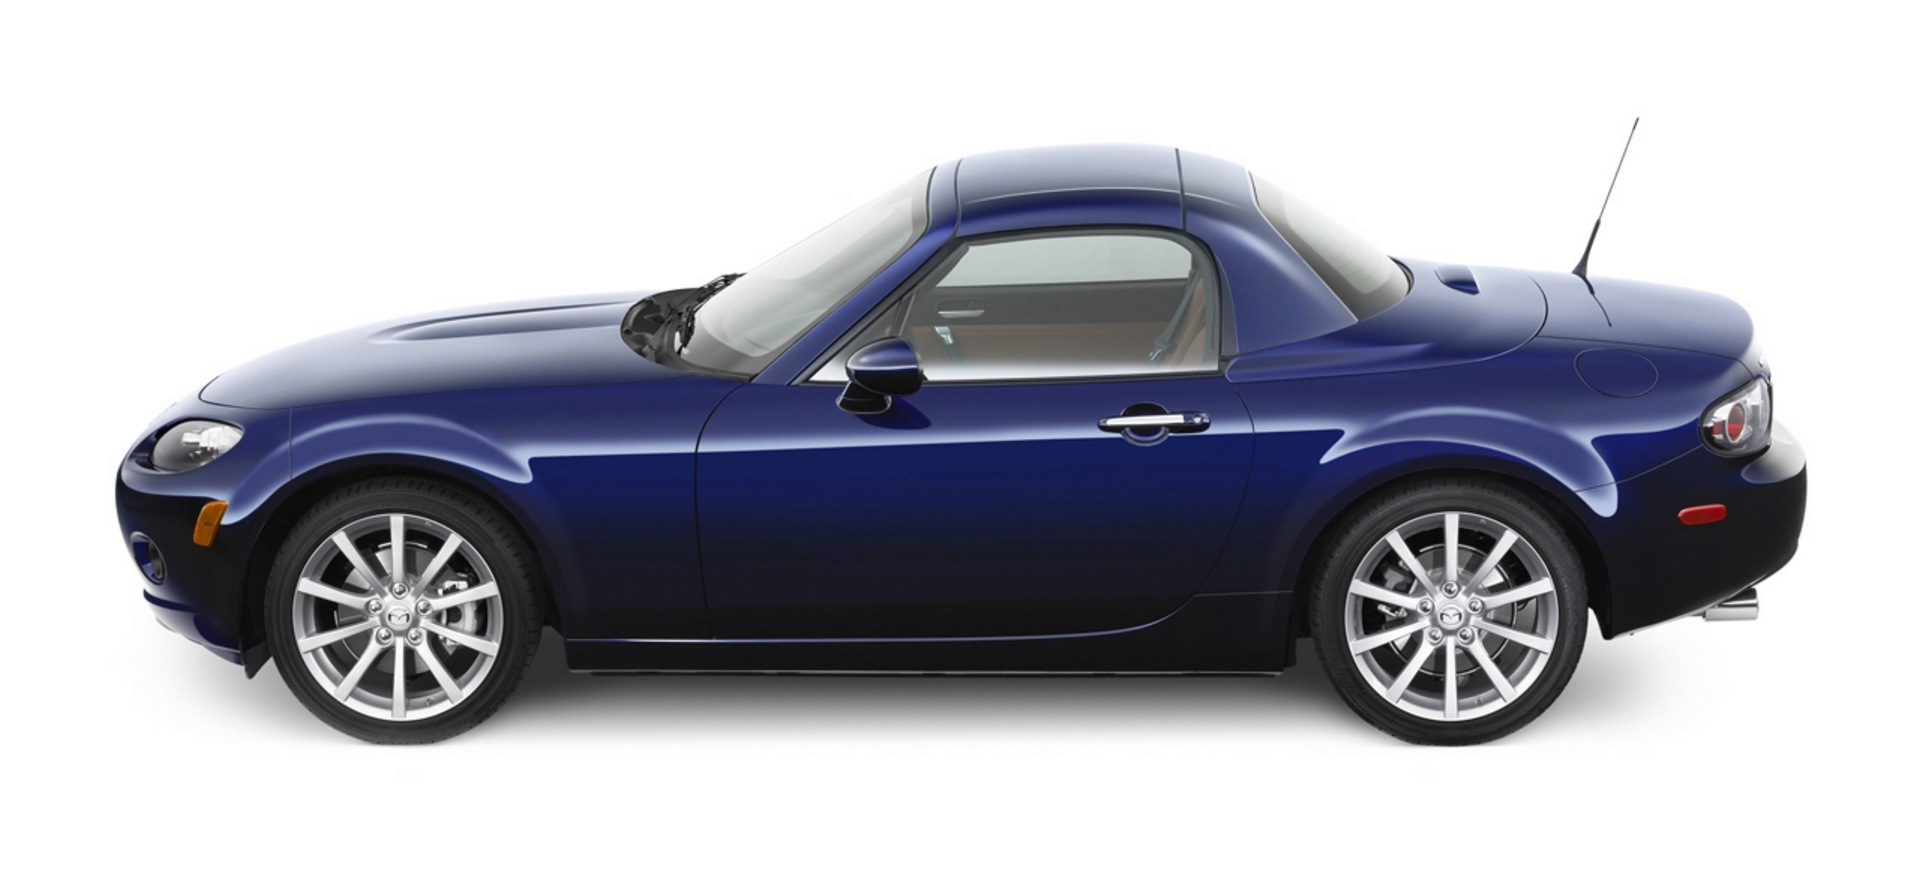 2008 mazda mx 5 miata images photo mazda mx5 2008. Black Bedroom Furniture Sets. Home Design Ideas